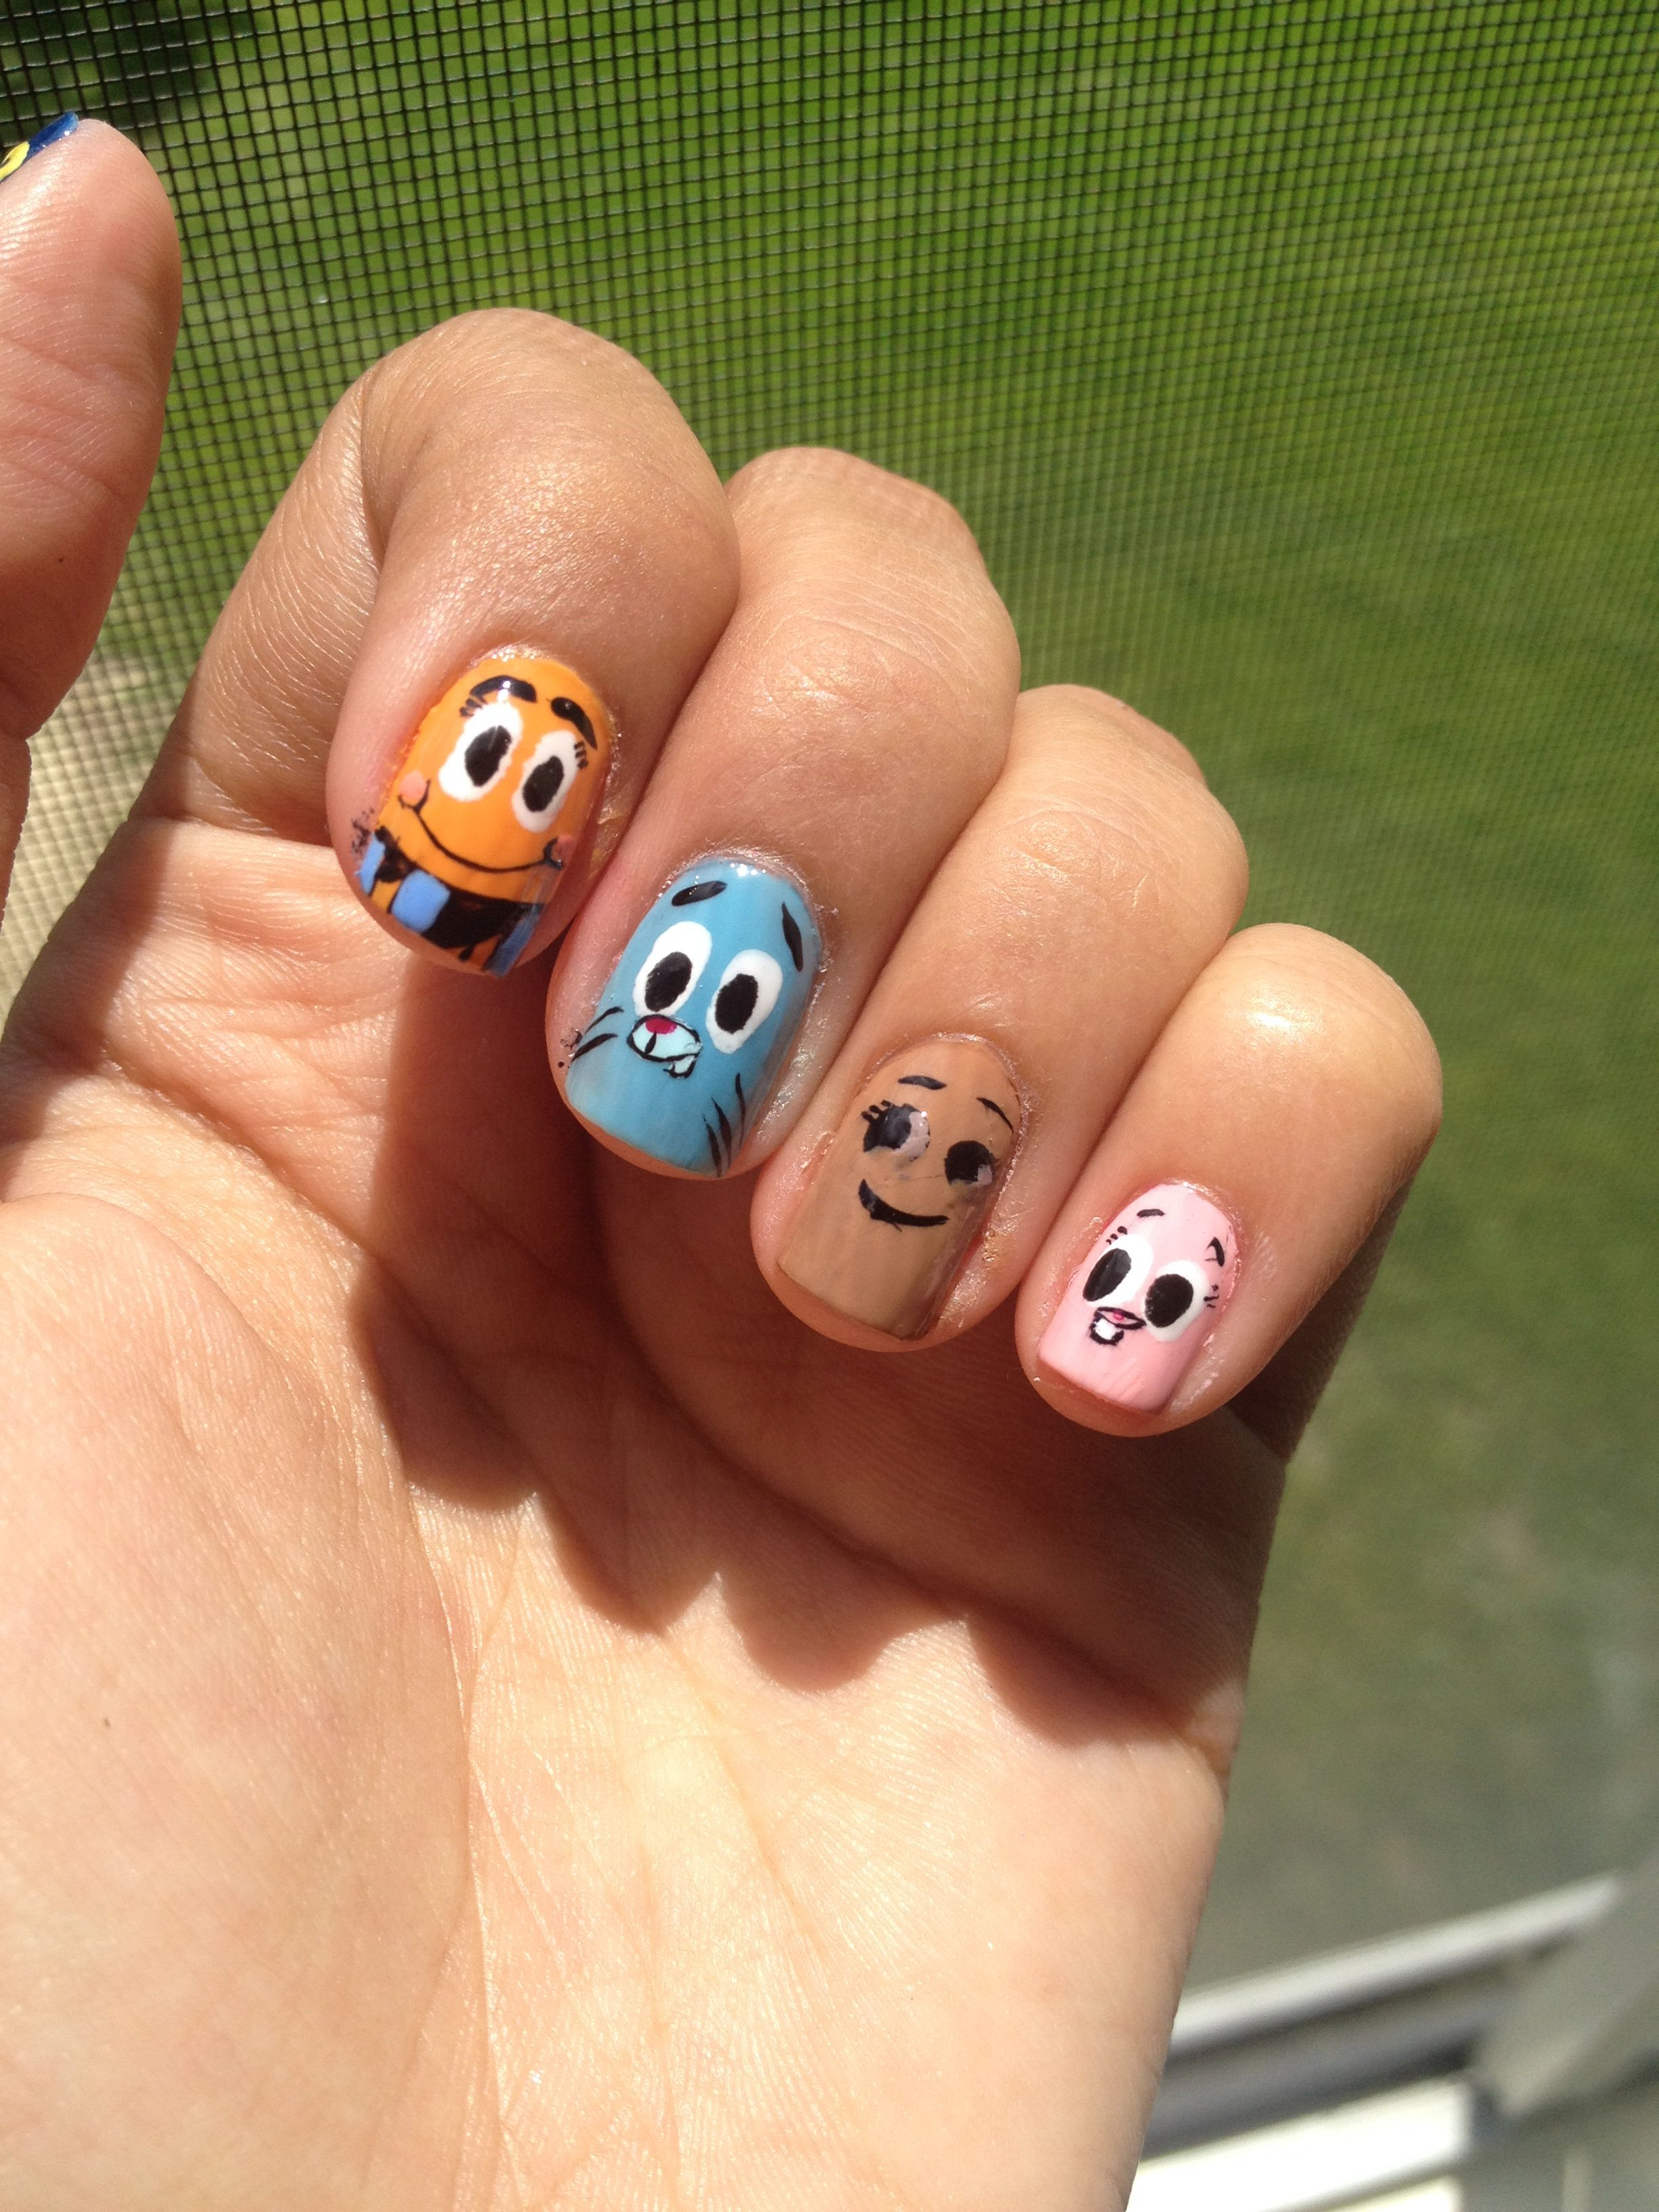 The Amazing World of Gumball nails :) Darwin, Gumball, Penny, and ...